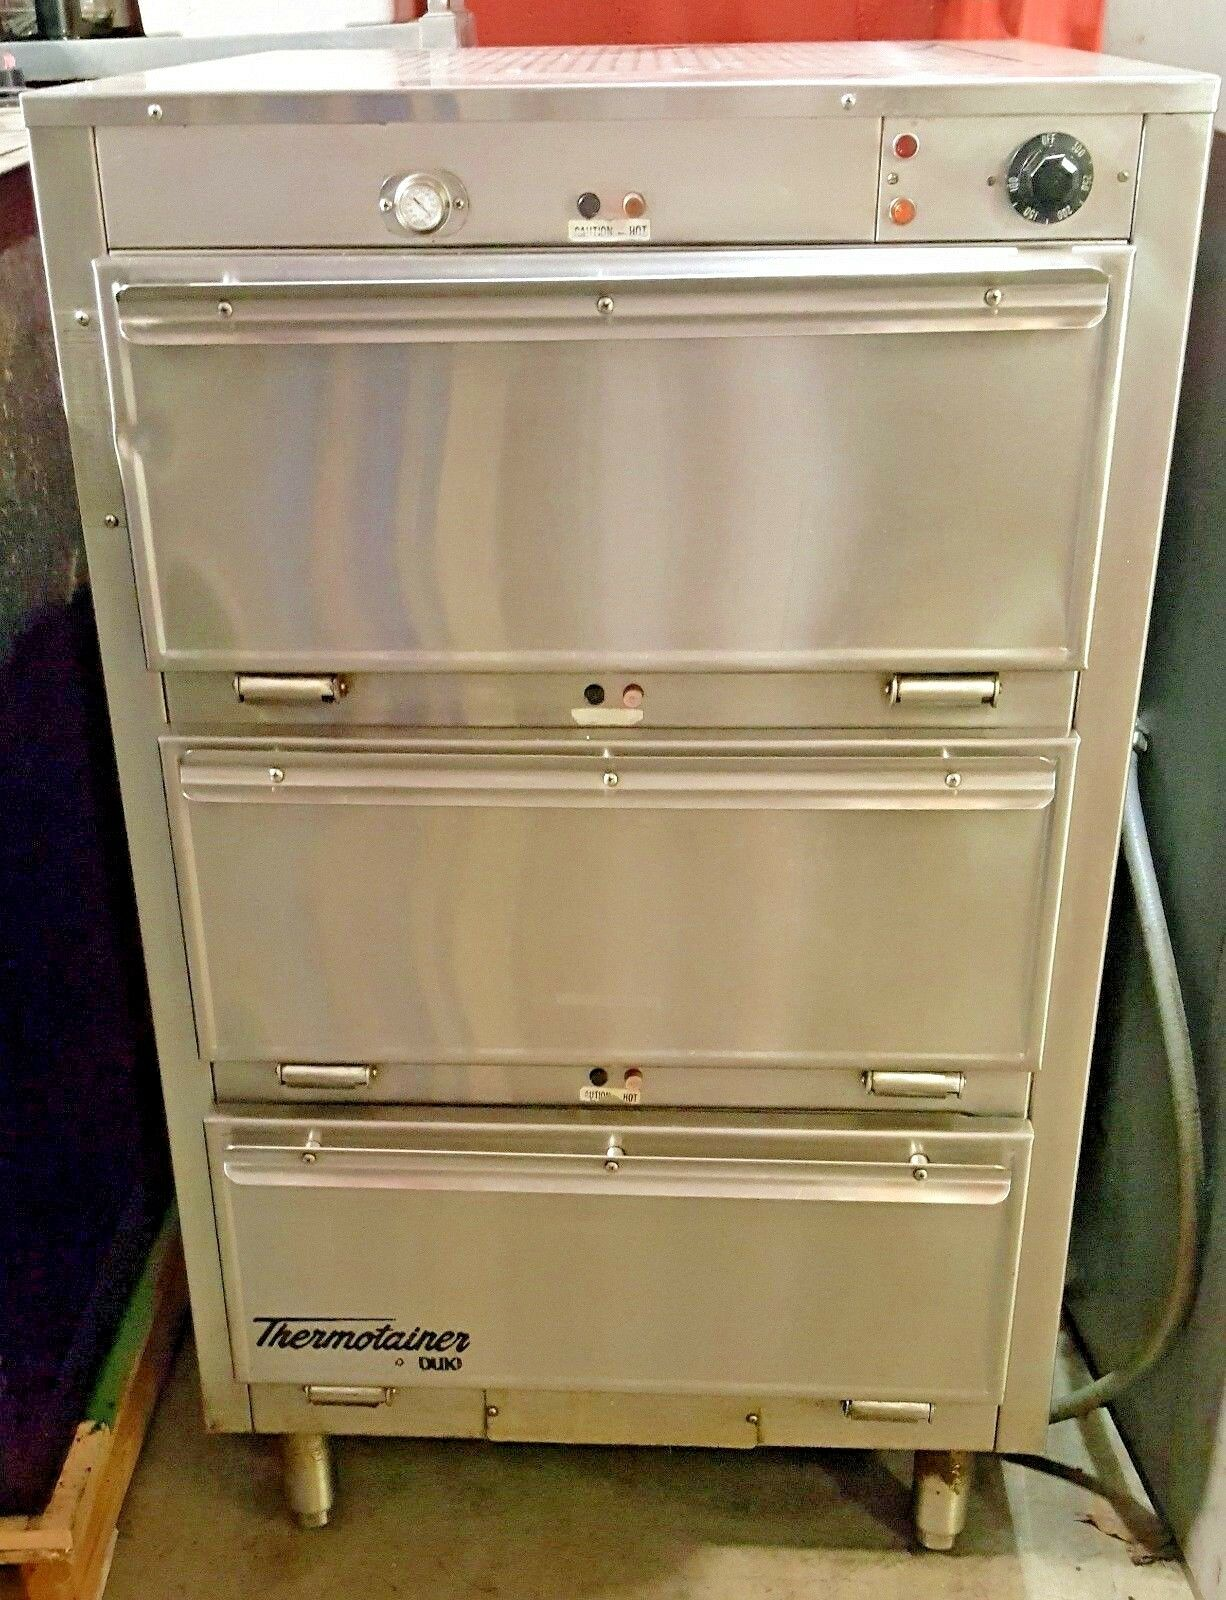 Food Warmer Cabinet Thermotainer